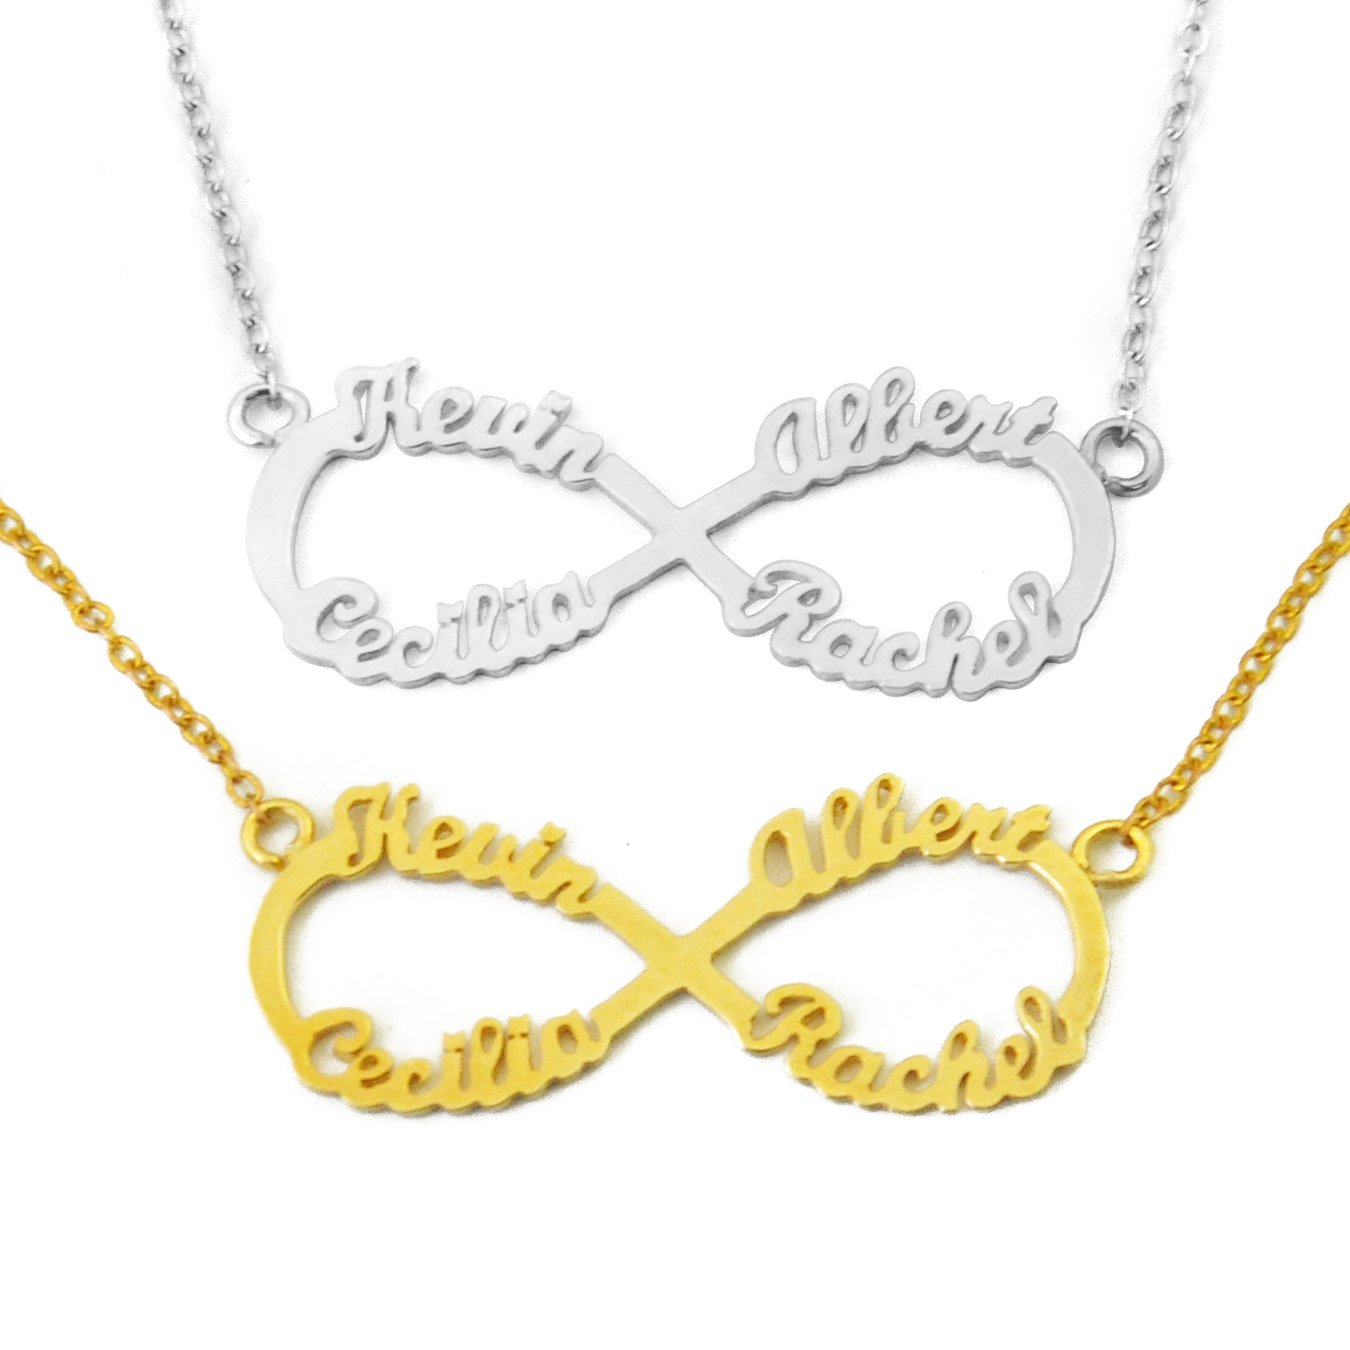 Four Names Necklace weddinghanger2015 Personalized Infinity Necklace Custom Family Necklace Mother Necklace